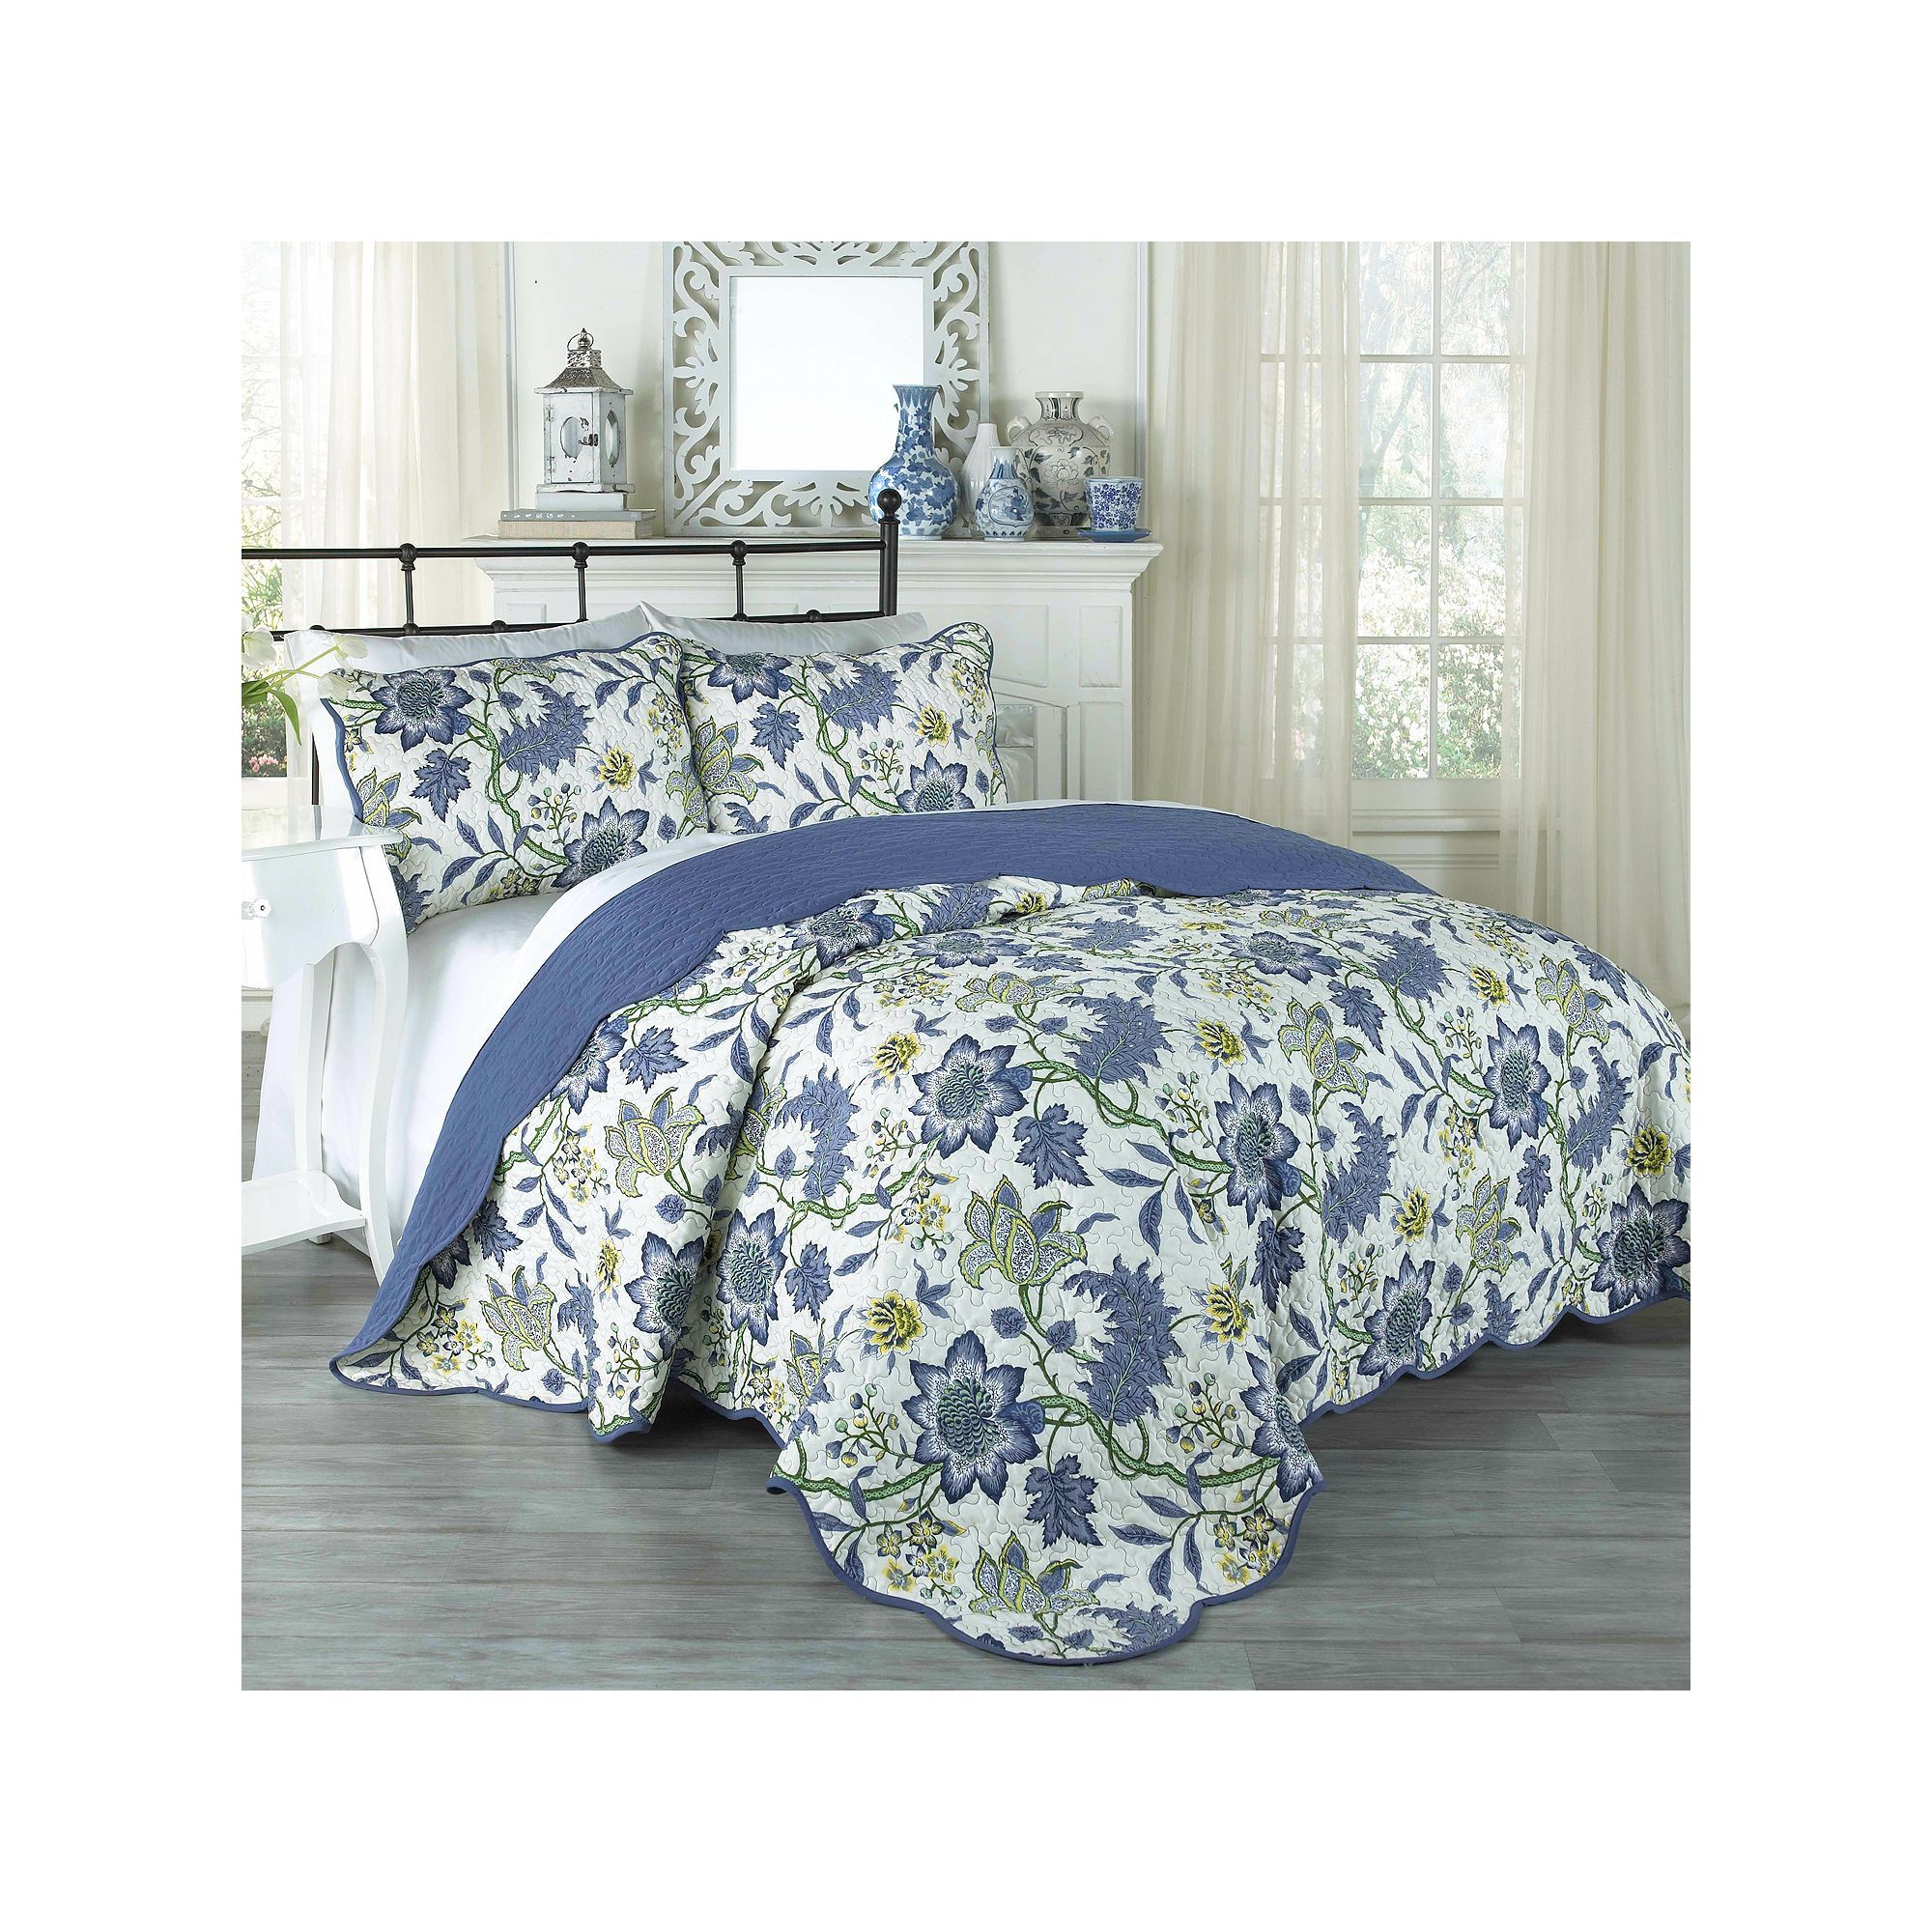 Set in Spring 3 Piece Quilt Collection by Traditions by Waverly